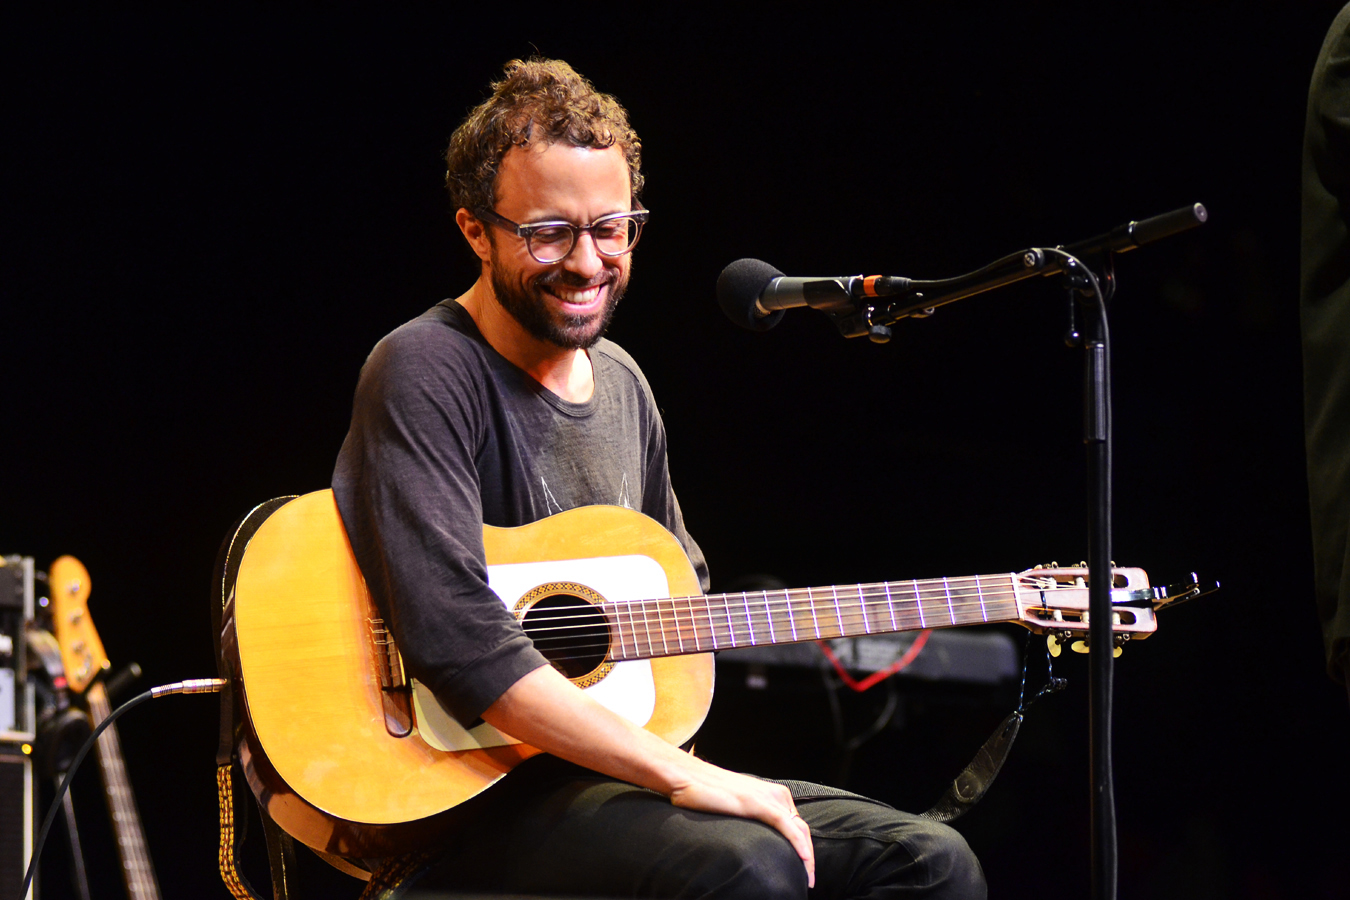 Grammy-winning singer-songwriter Jesse Harris plays songs from his bossa nova-influenced new album, Sub Rosa.